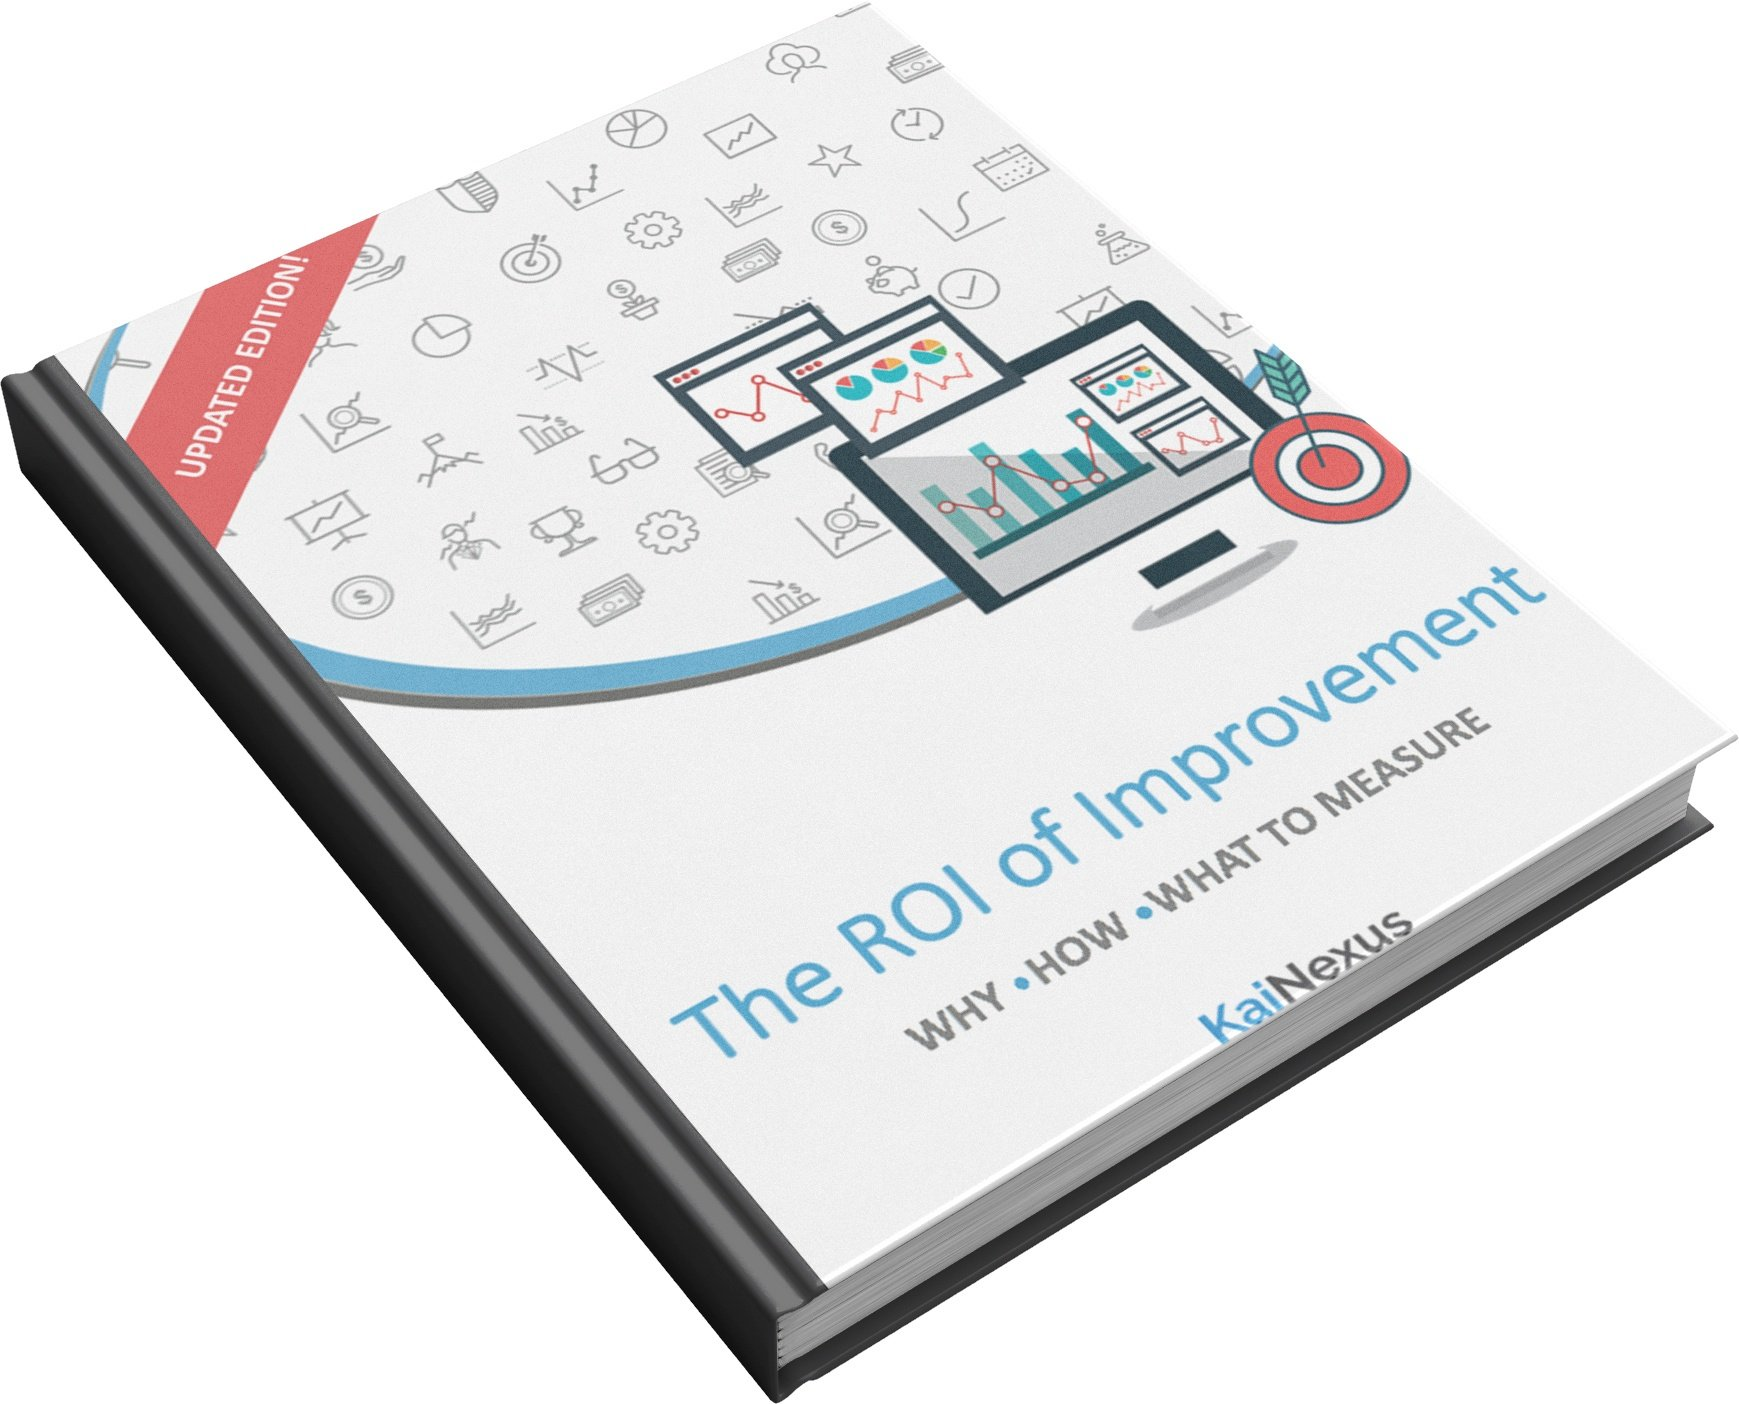 ROI of Improvement eBook Cover.jpg